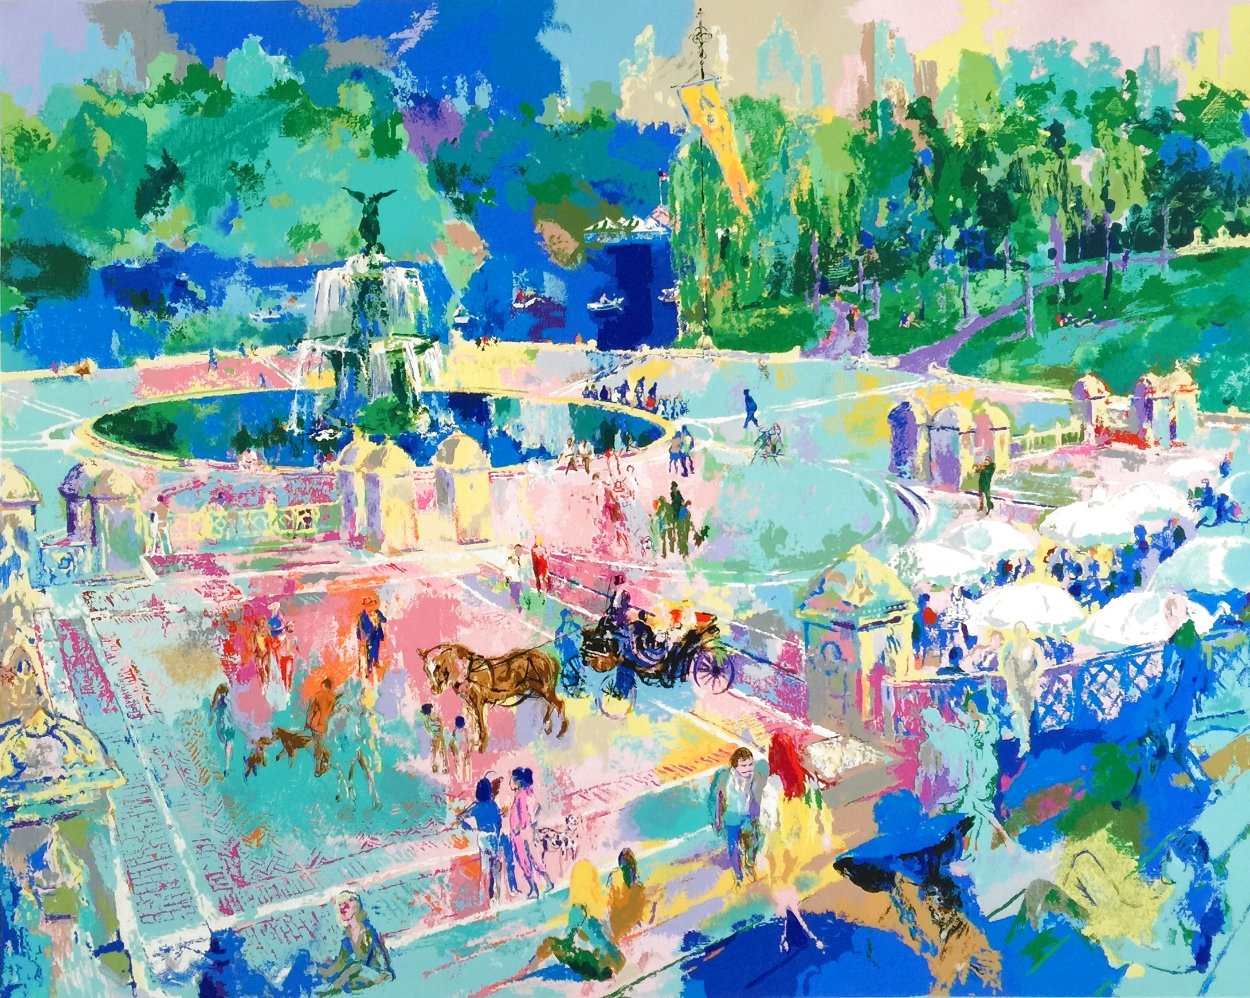 Bethesda Fountain - Central Park 1989 30x38 Huge  Limited Edition Print by LeRoy Neiman